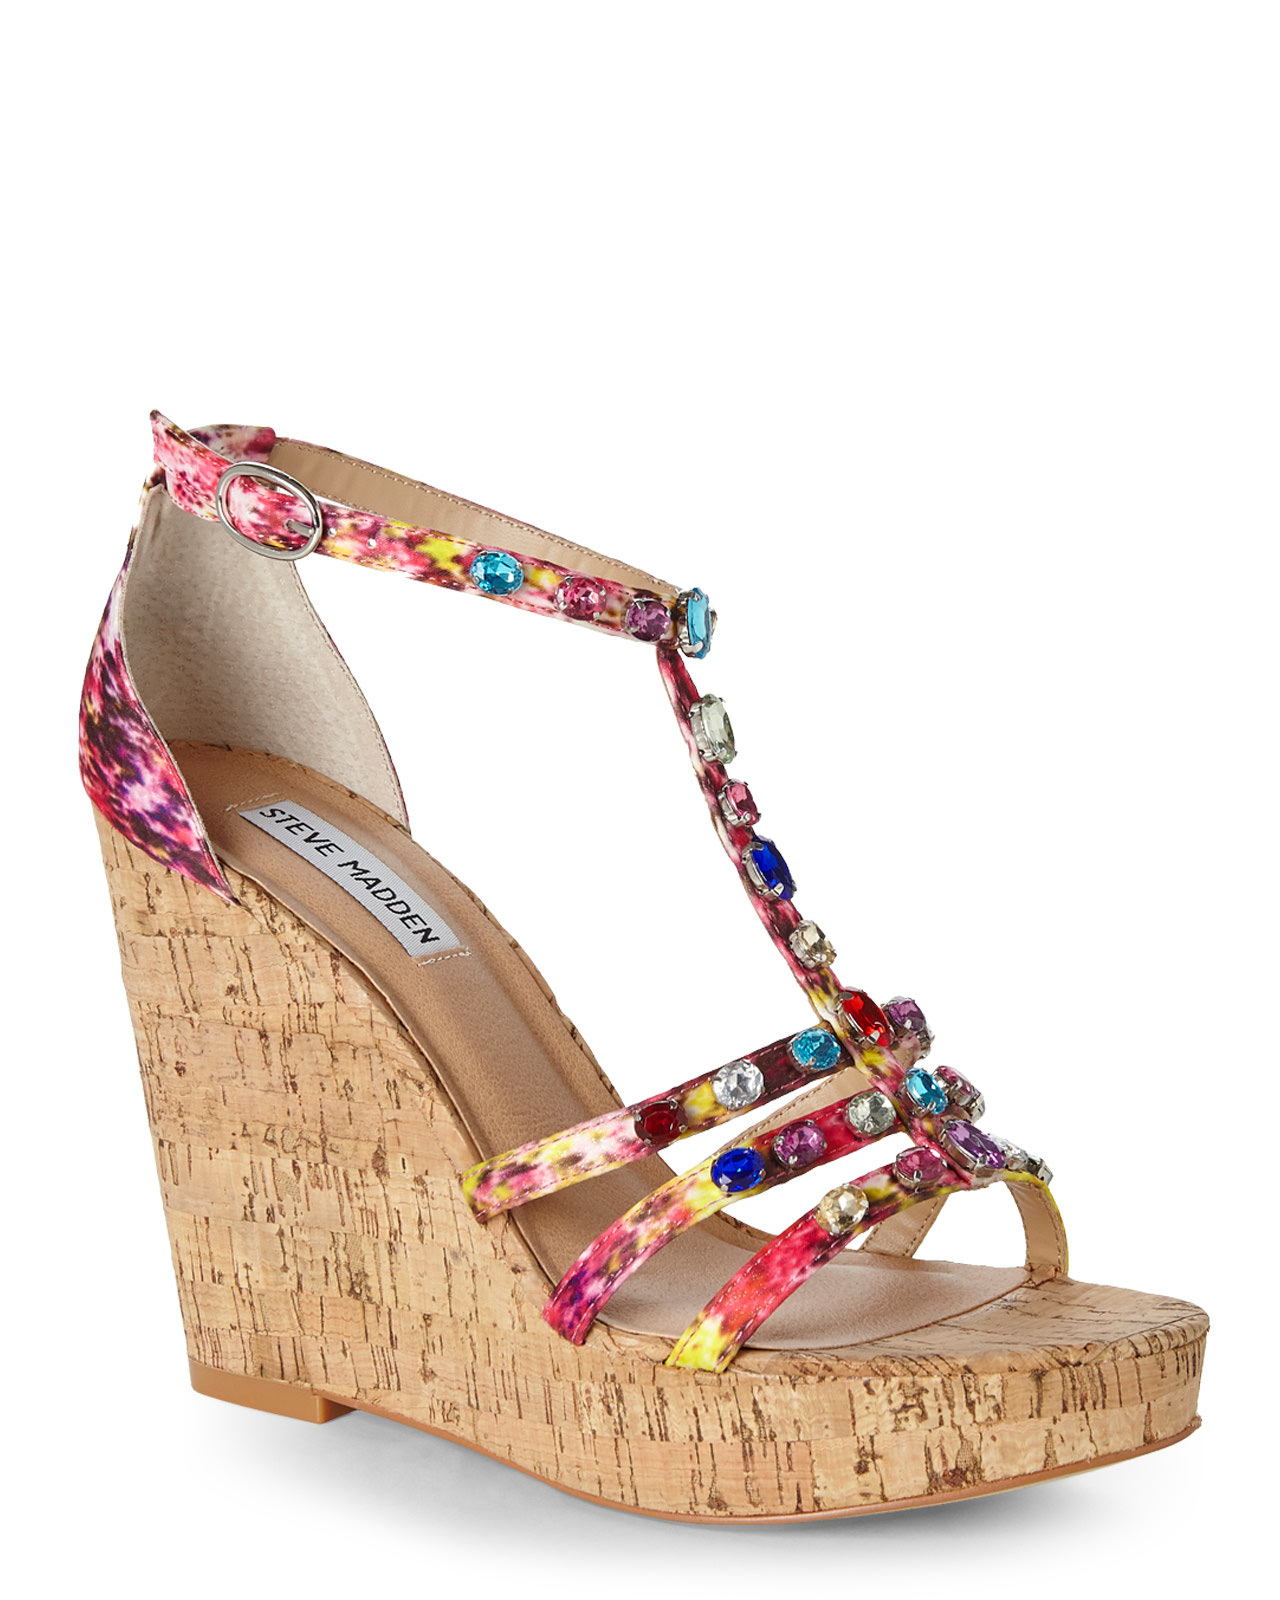 00a62fe21a0 Lyst - Steve Madden Multicolor Faara Wedge Sandals